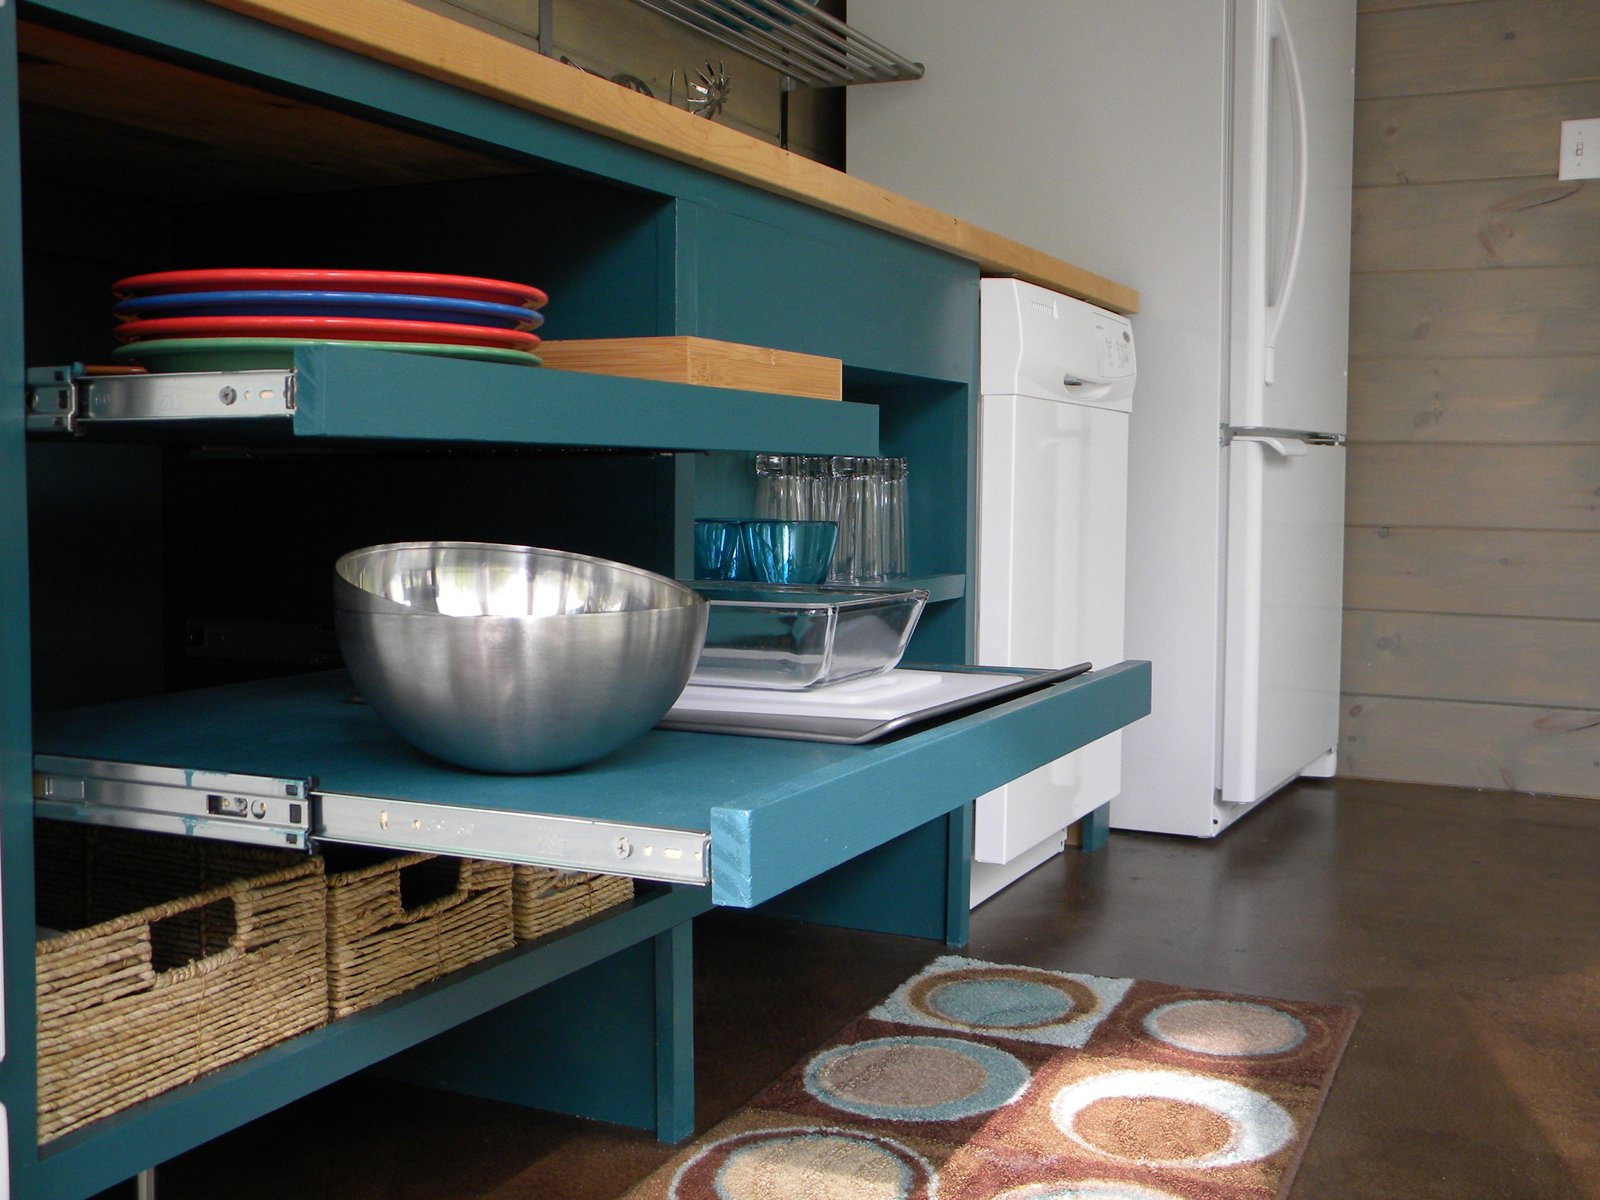 The open, pull-out shelves allow for easy reaching and the gap at the bottom of the drawers makes room for the feet of someone in a wheelchair so they can be closer to the counter.  Photo 2 of 7 in 7 Surprising Shelving Ideas For the Creative Organizer from Butterfly Gap Retreat